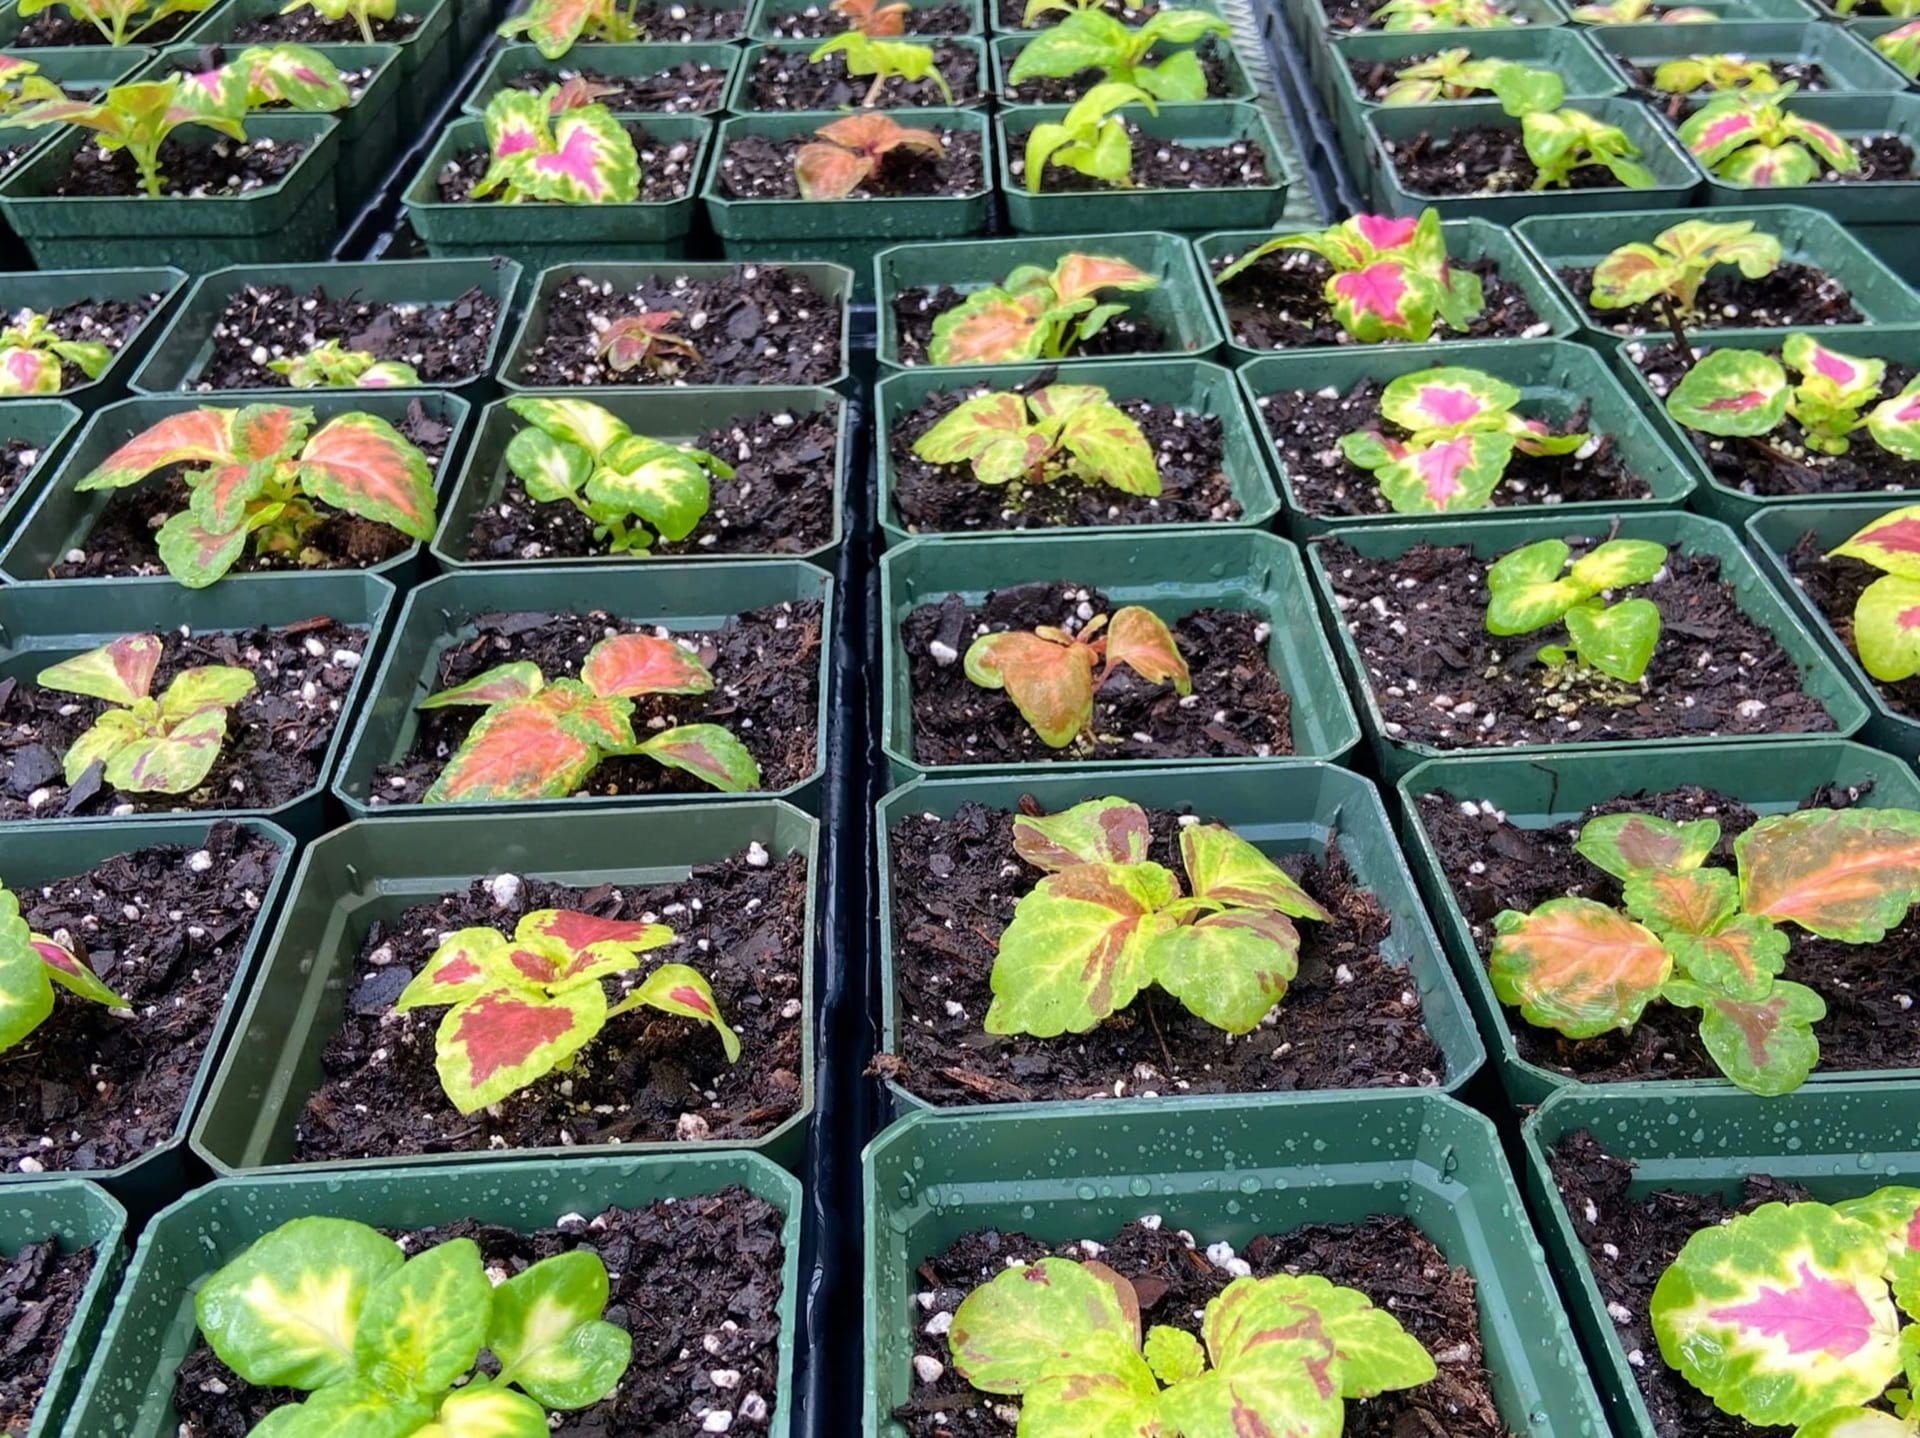 Plectranthus scutellarioides, commonly knows as Coleus, seedlings growing for Biology classes.